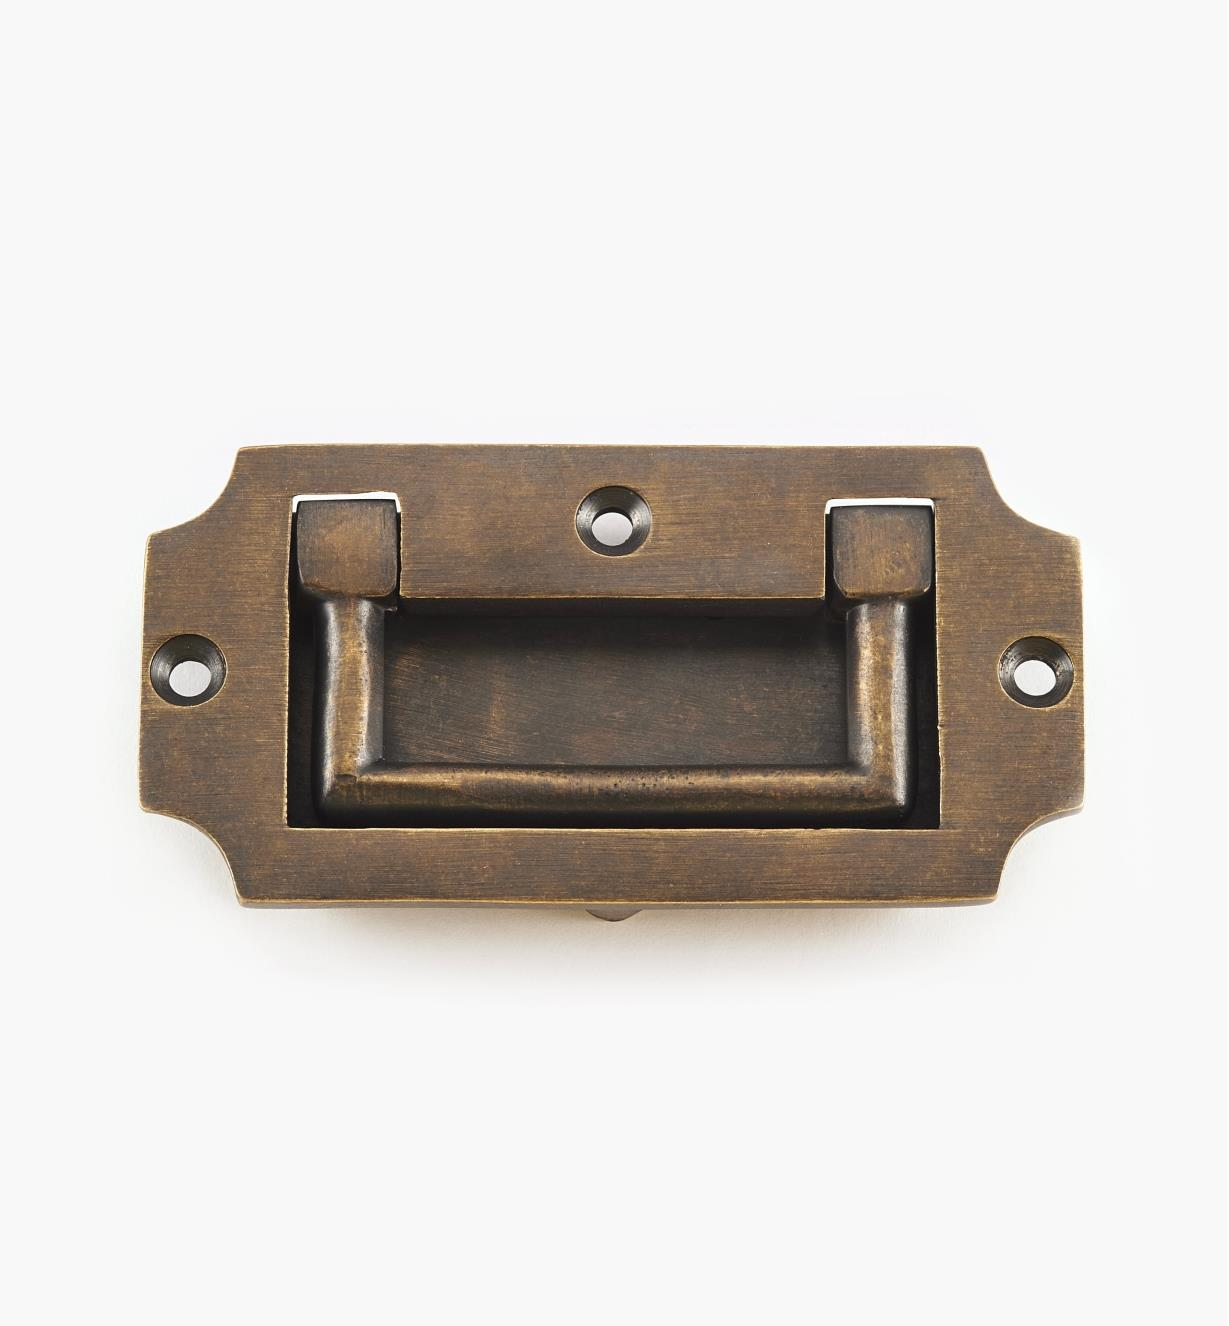 00A1815 - Campaign-Style Military-Style Chest Handle